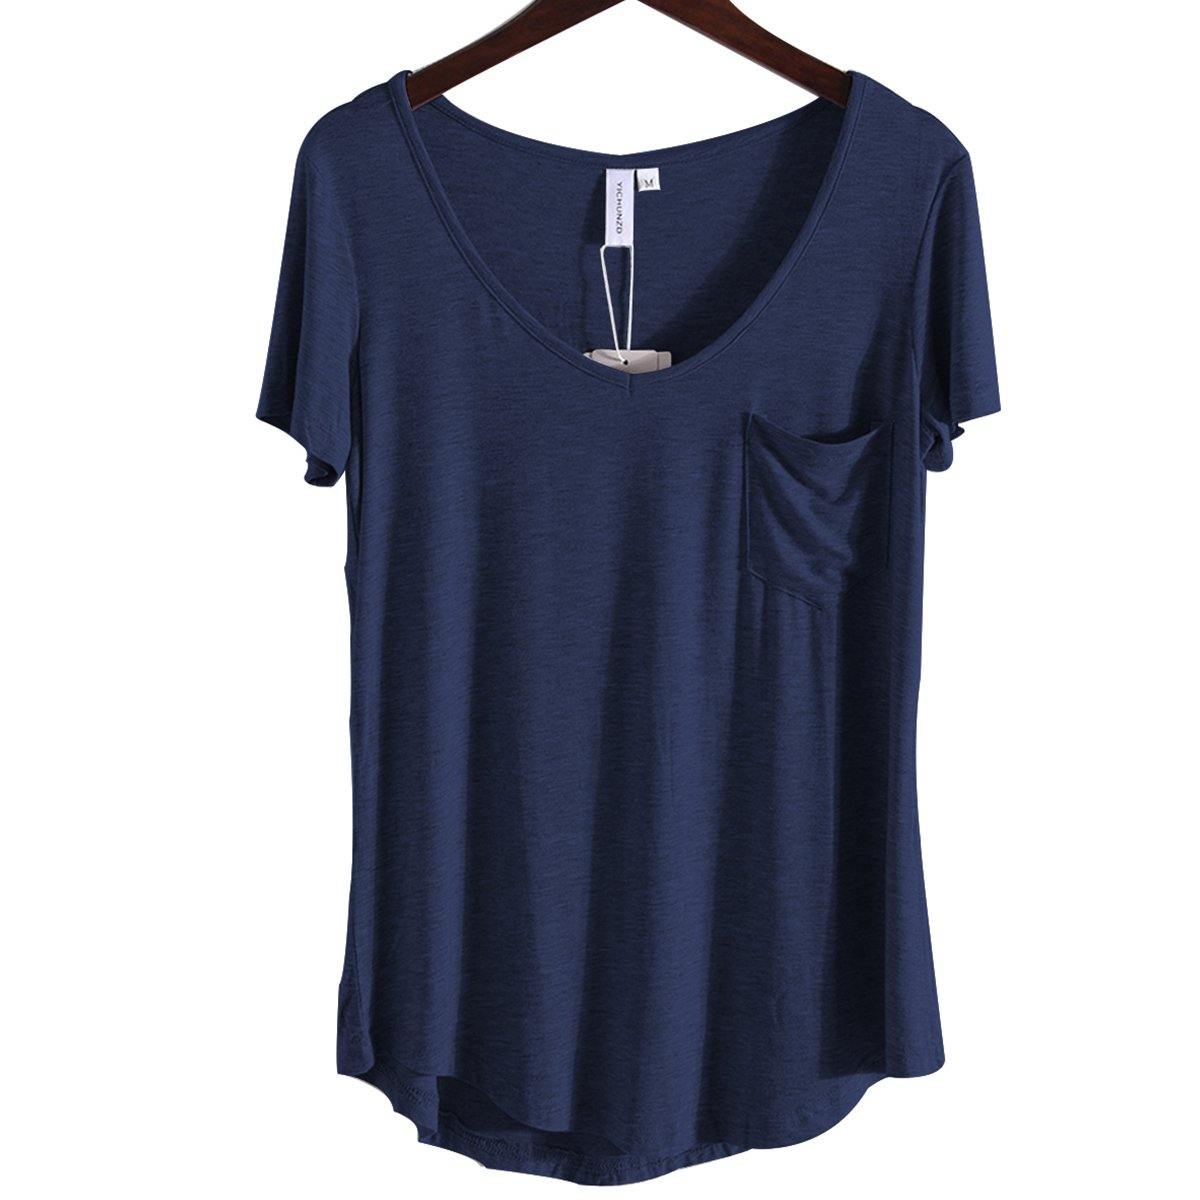 AZHONG Women's Casual Short Sleeve V Neck T-Shirt Loose High Low Hem Tunic Tee Tops with Pocket